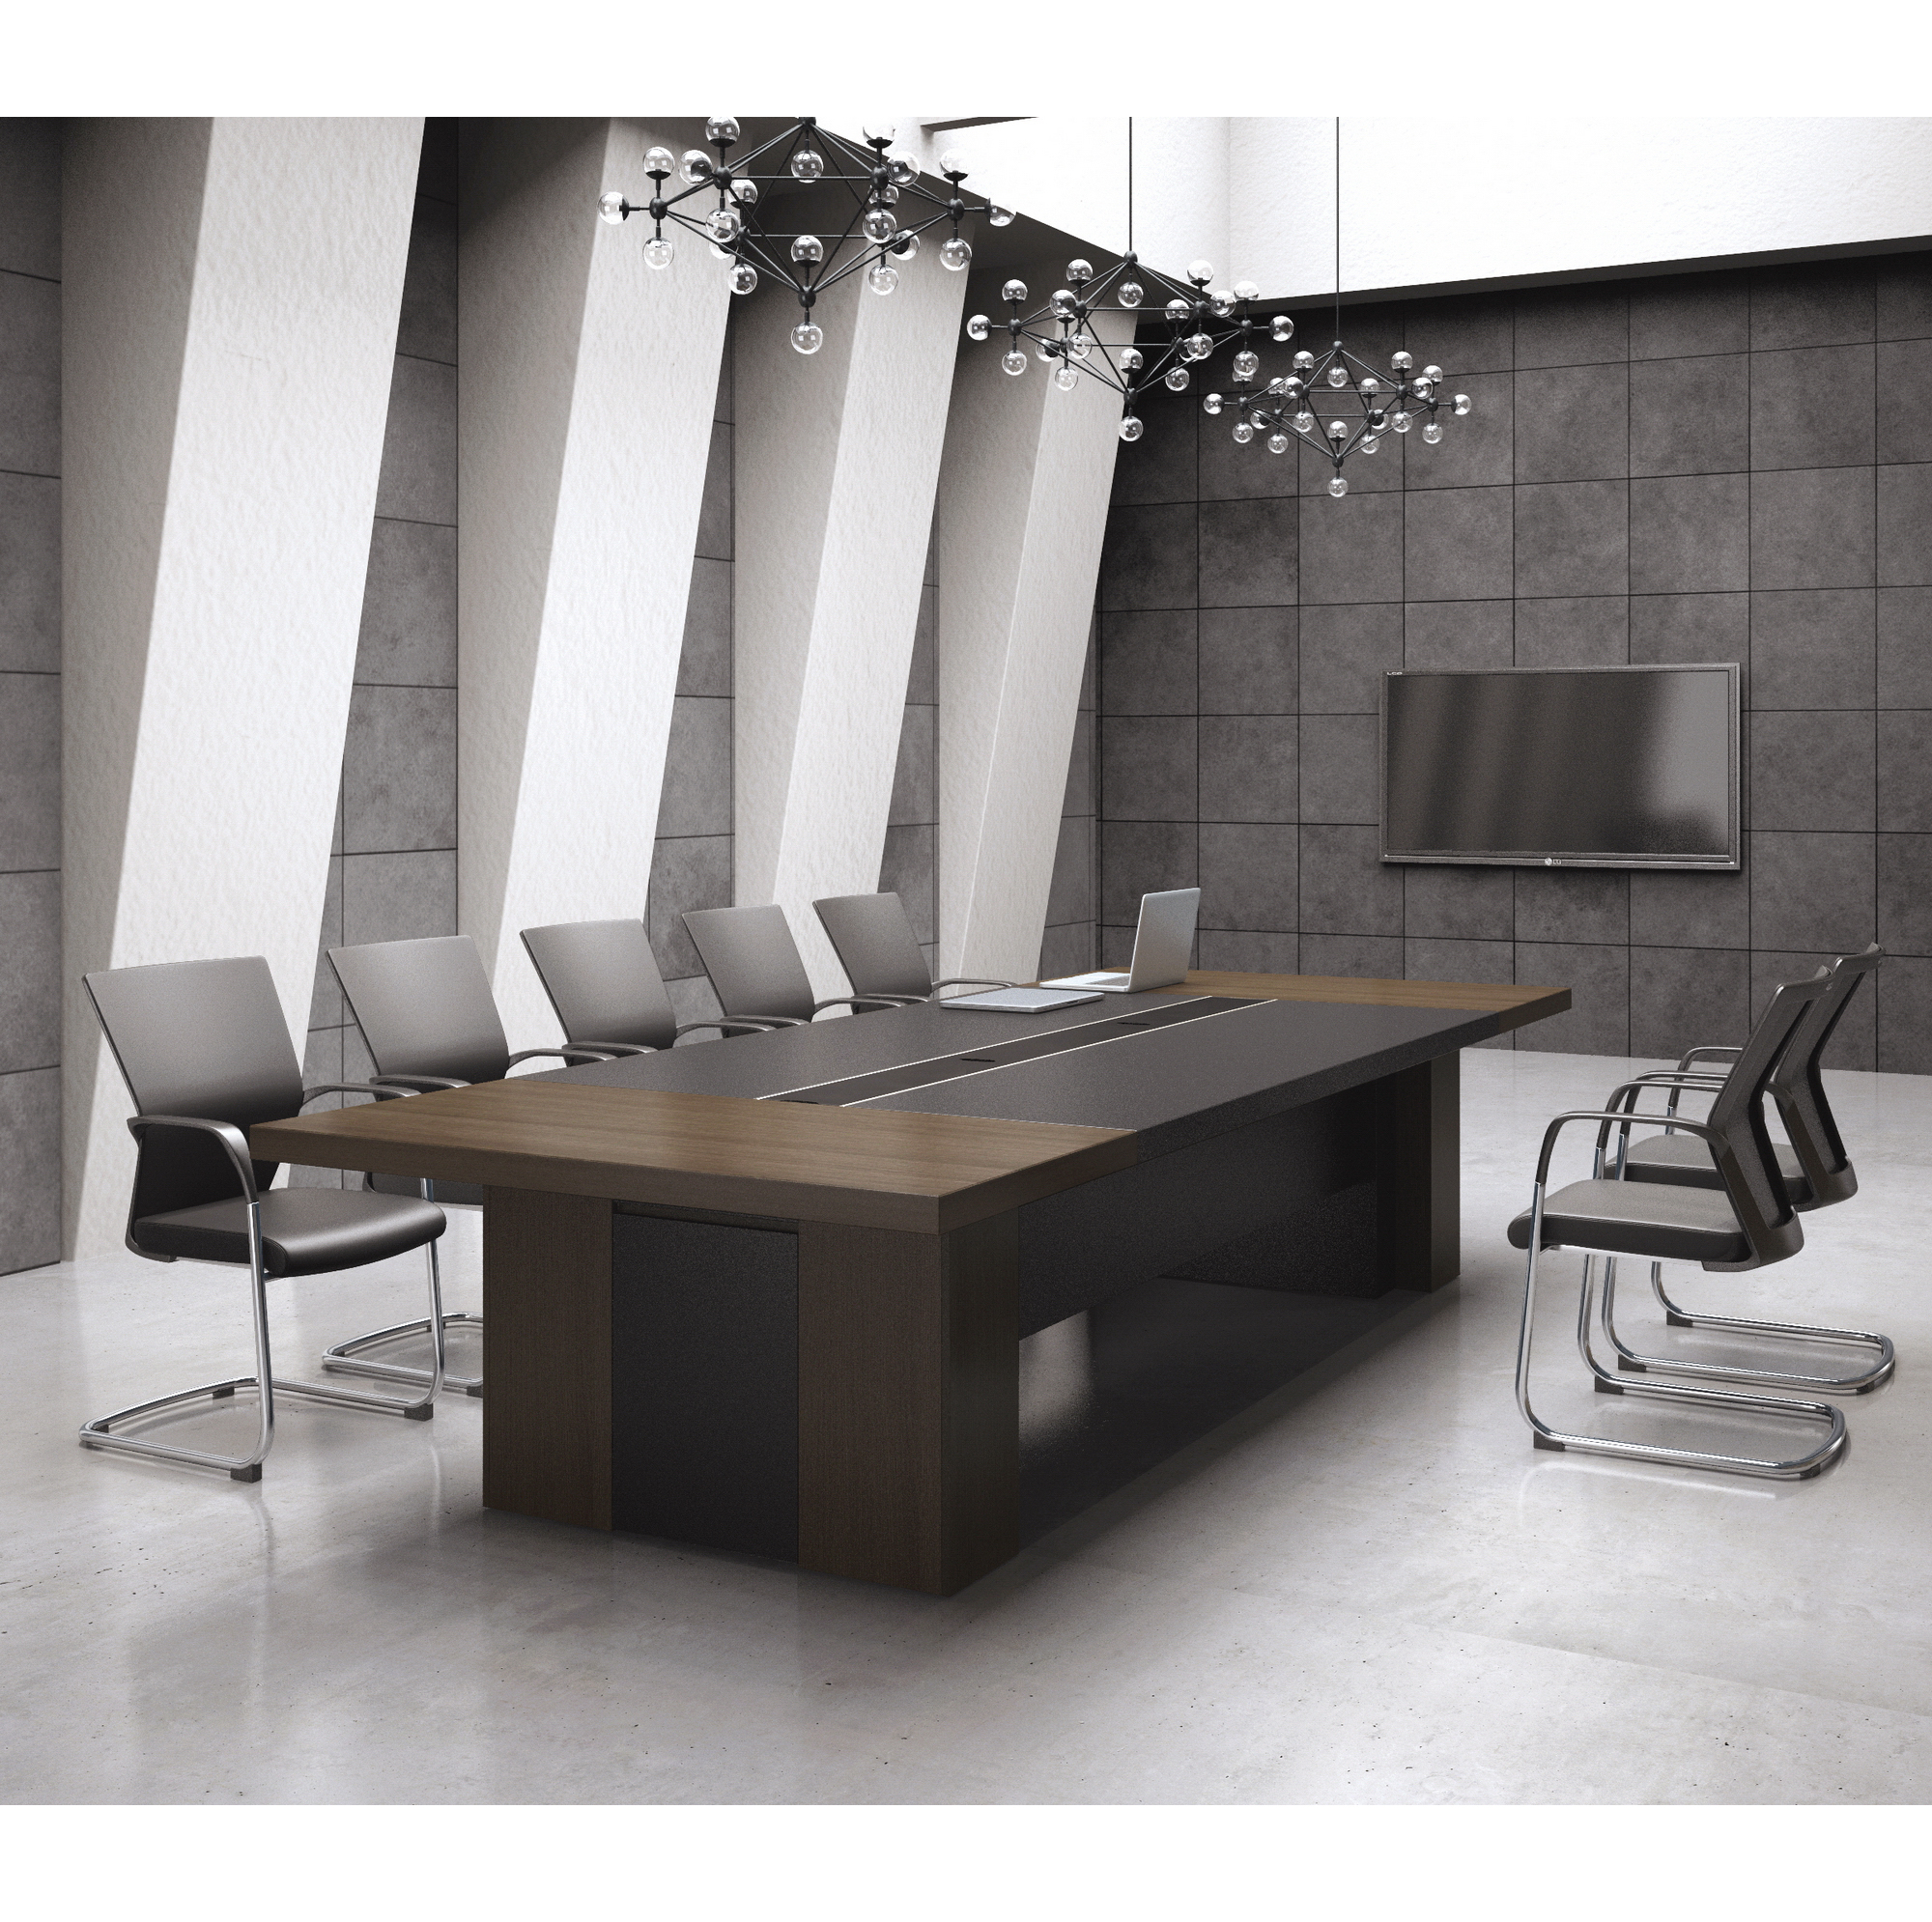 Modern meeting room office furniture conference table